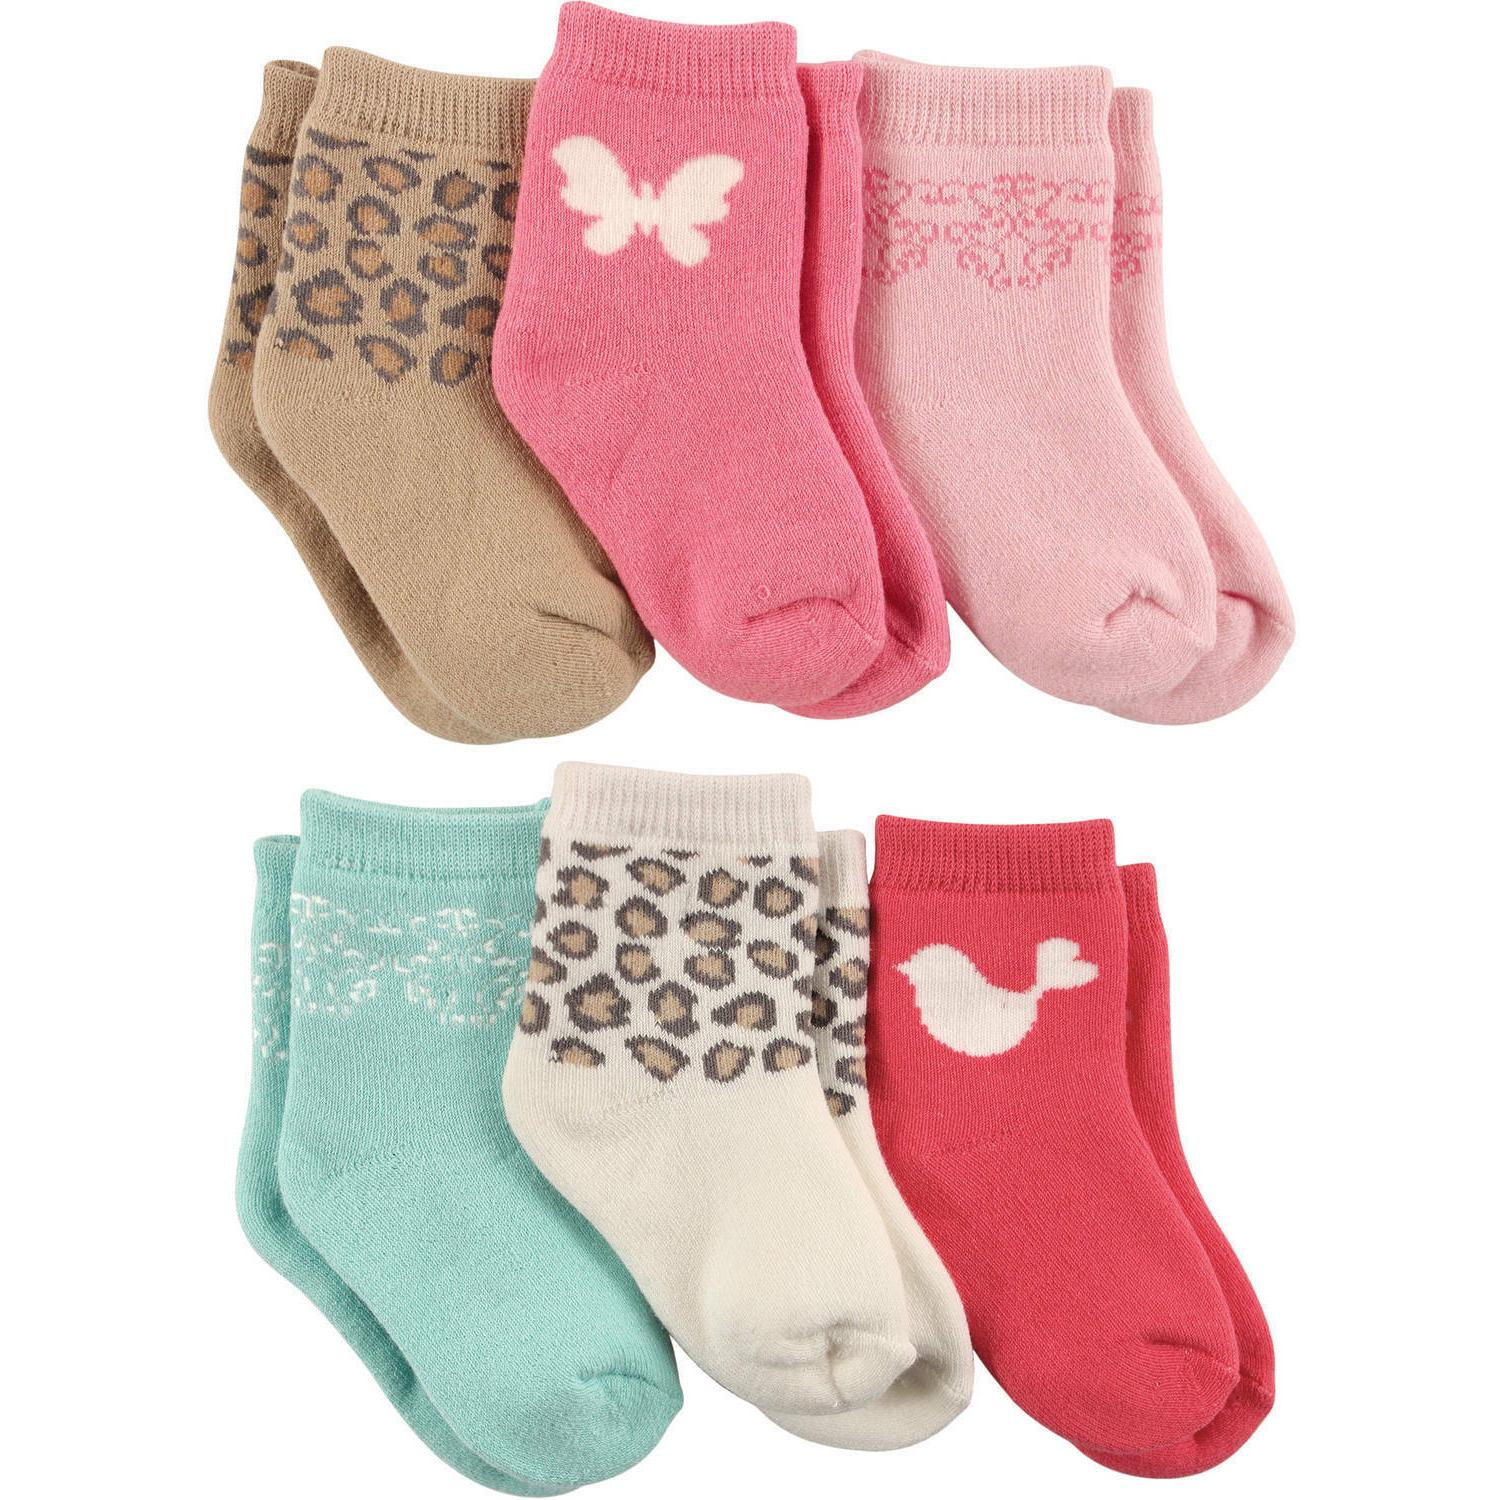 LUVABLE FRIENDS 6 PACK COMPUTER CUSHION SOCKS BABY GIRLS 0-6